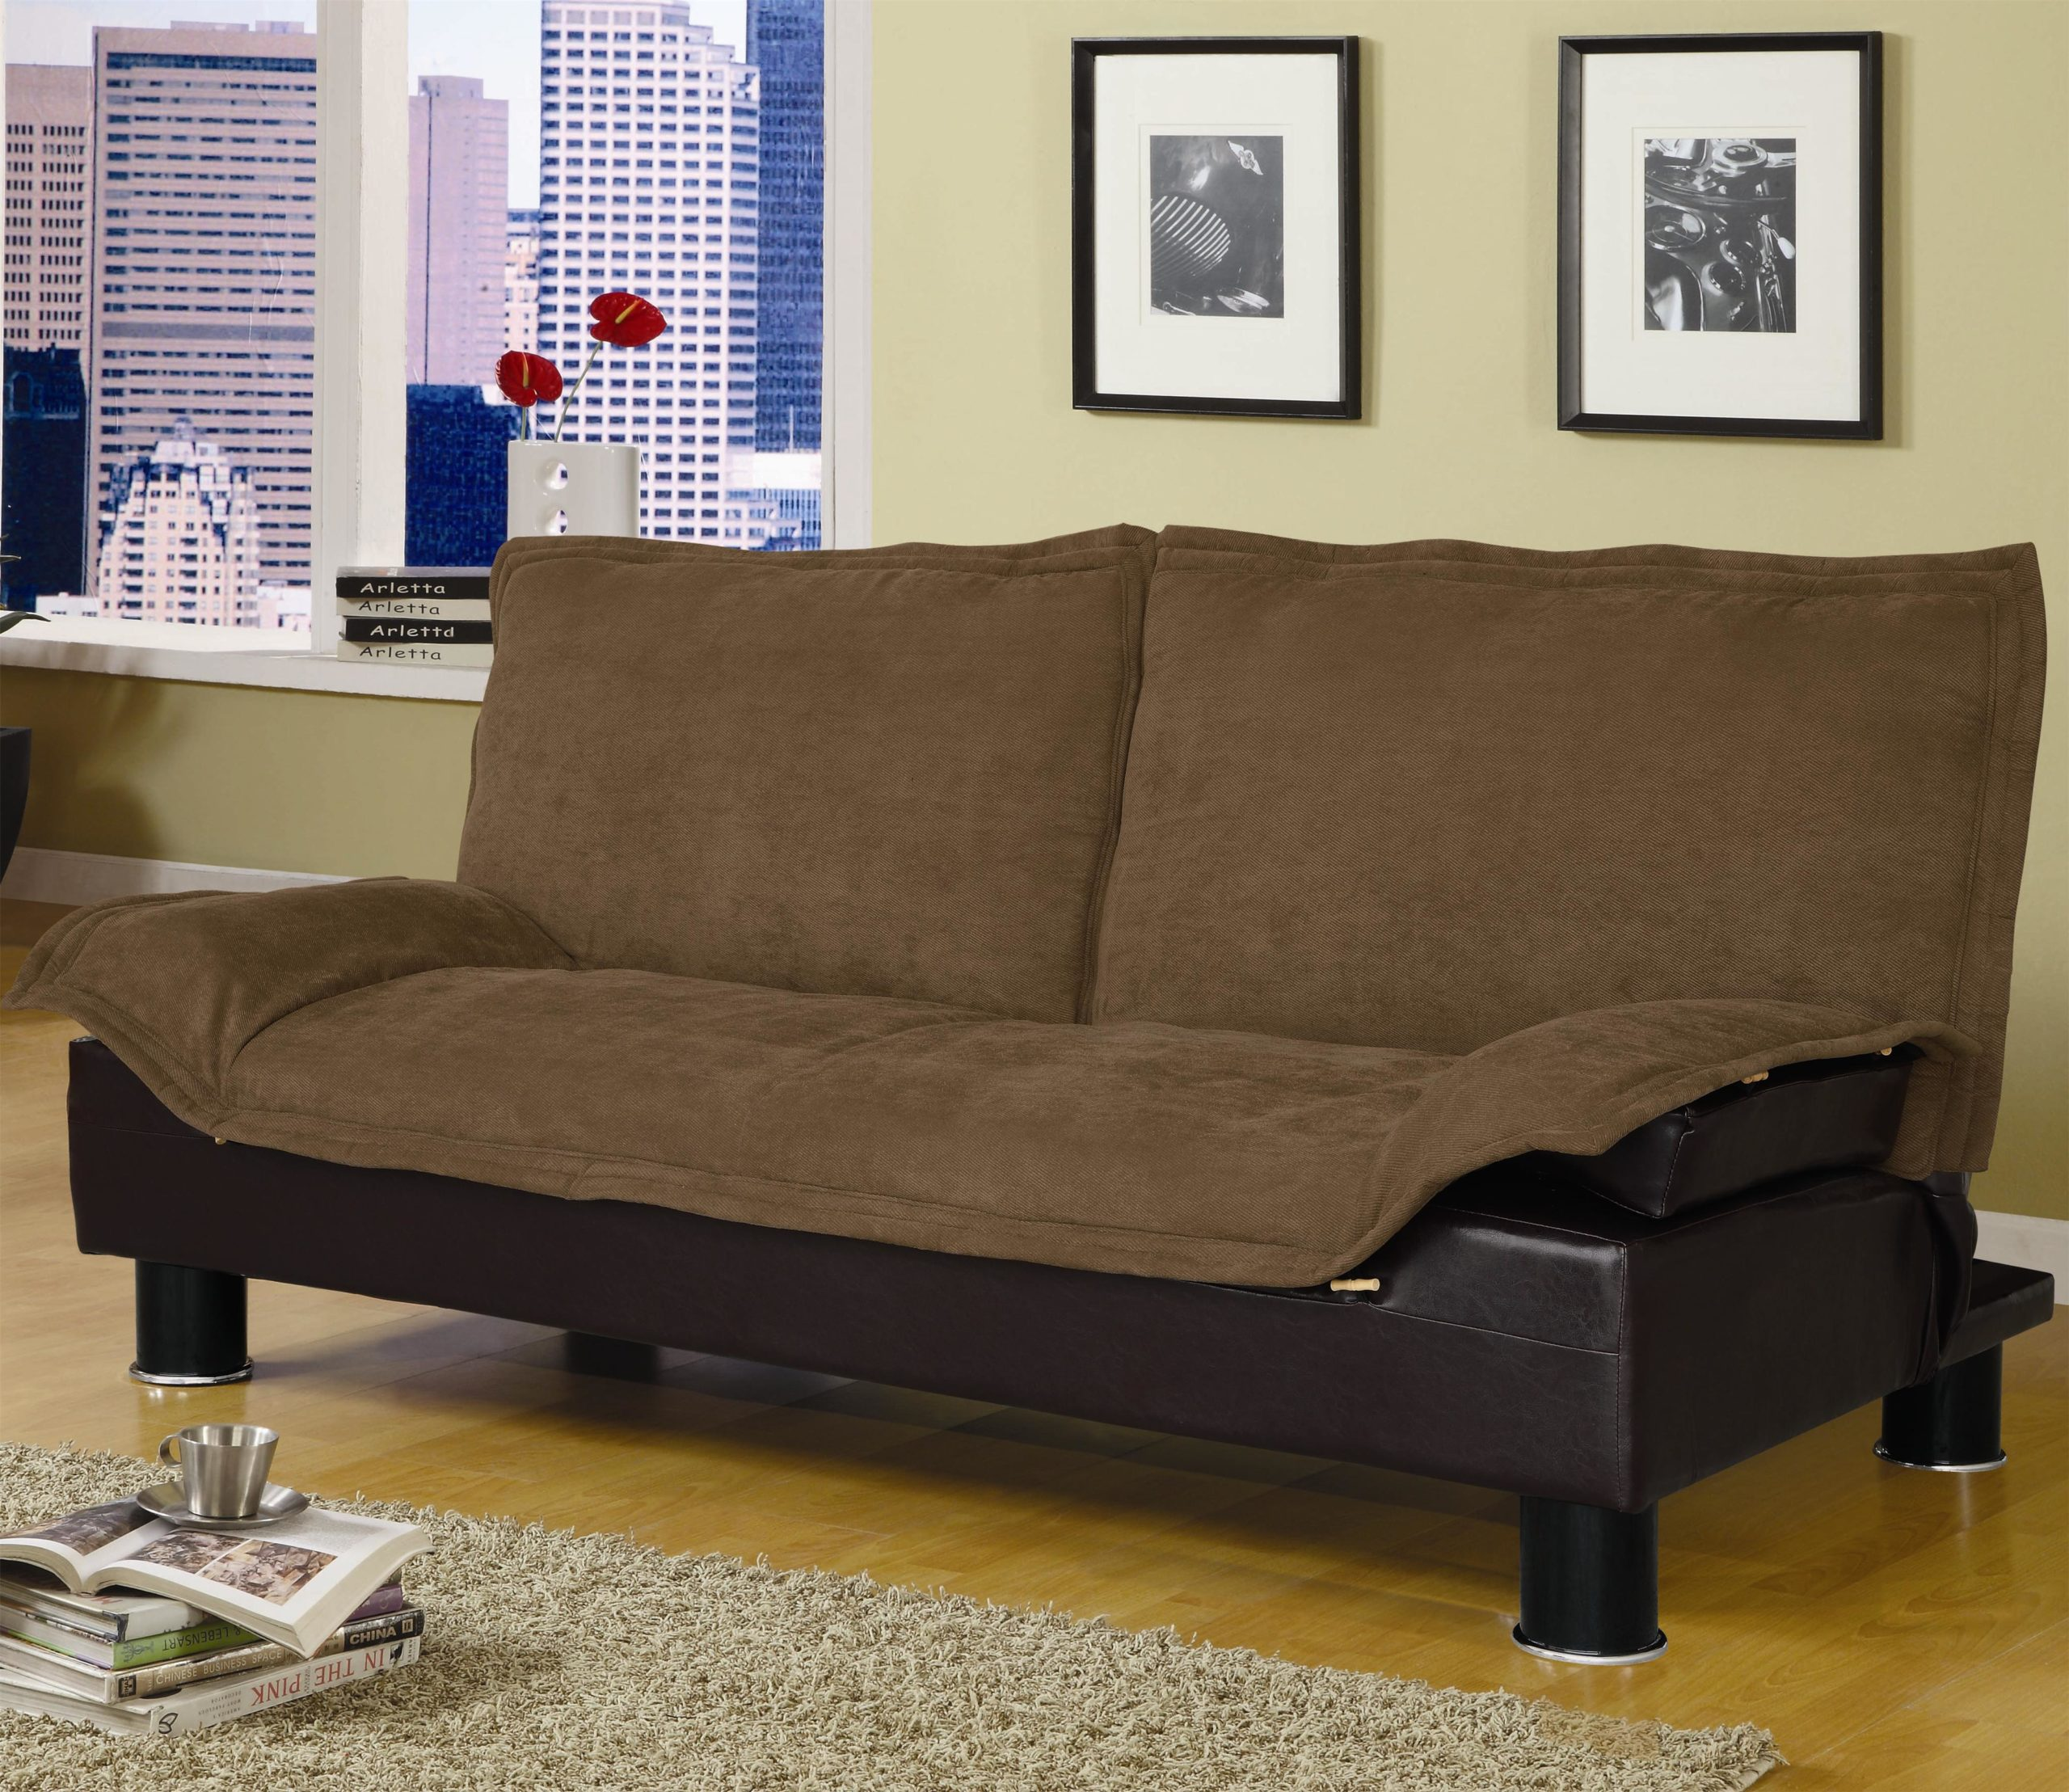 Brown Casual Convertible Sofa Bed in Up Position